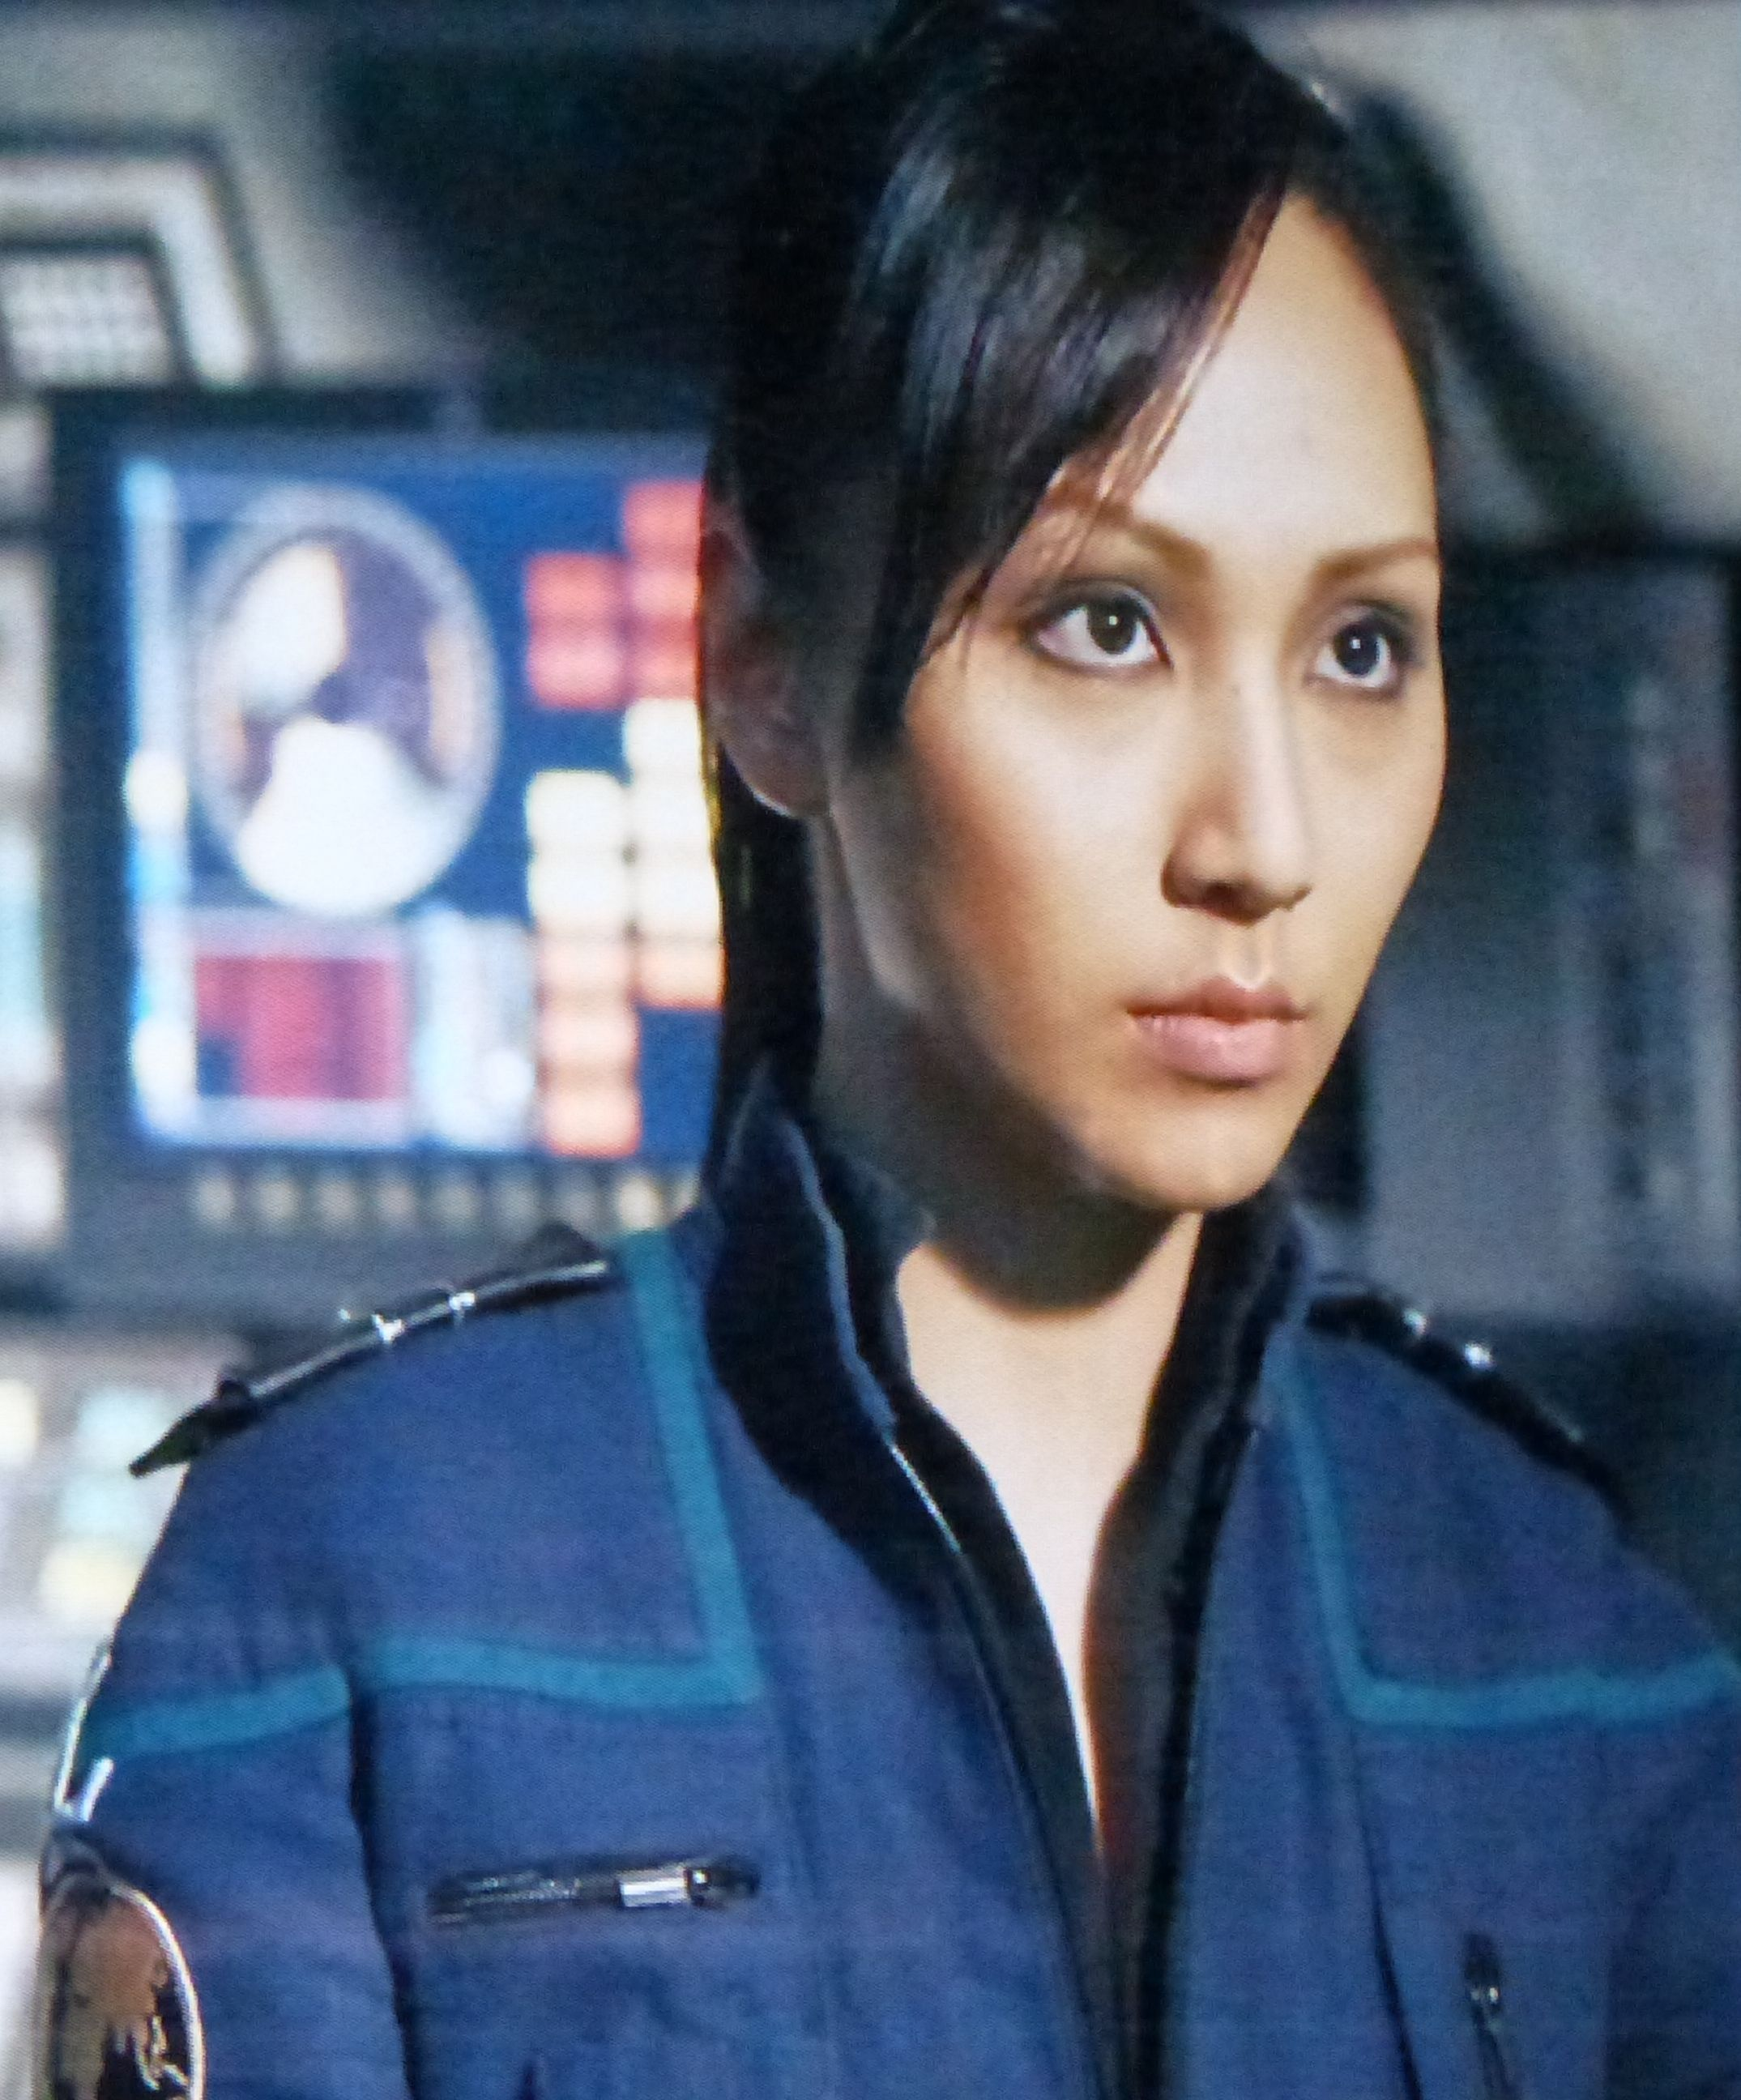 Linda Park is a South Korean-born American actress. She is known for her portrayal of communications officer character Hoshi Sato in the television series Star Trek: Enterprise, and for her role as Maggie Cheon on the drama series Crash.